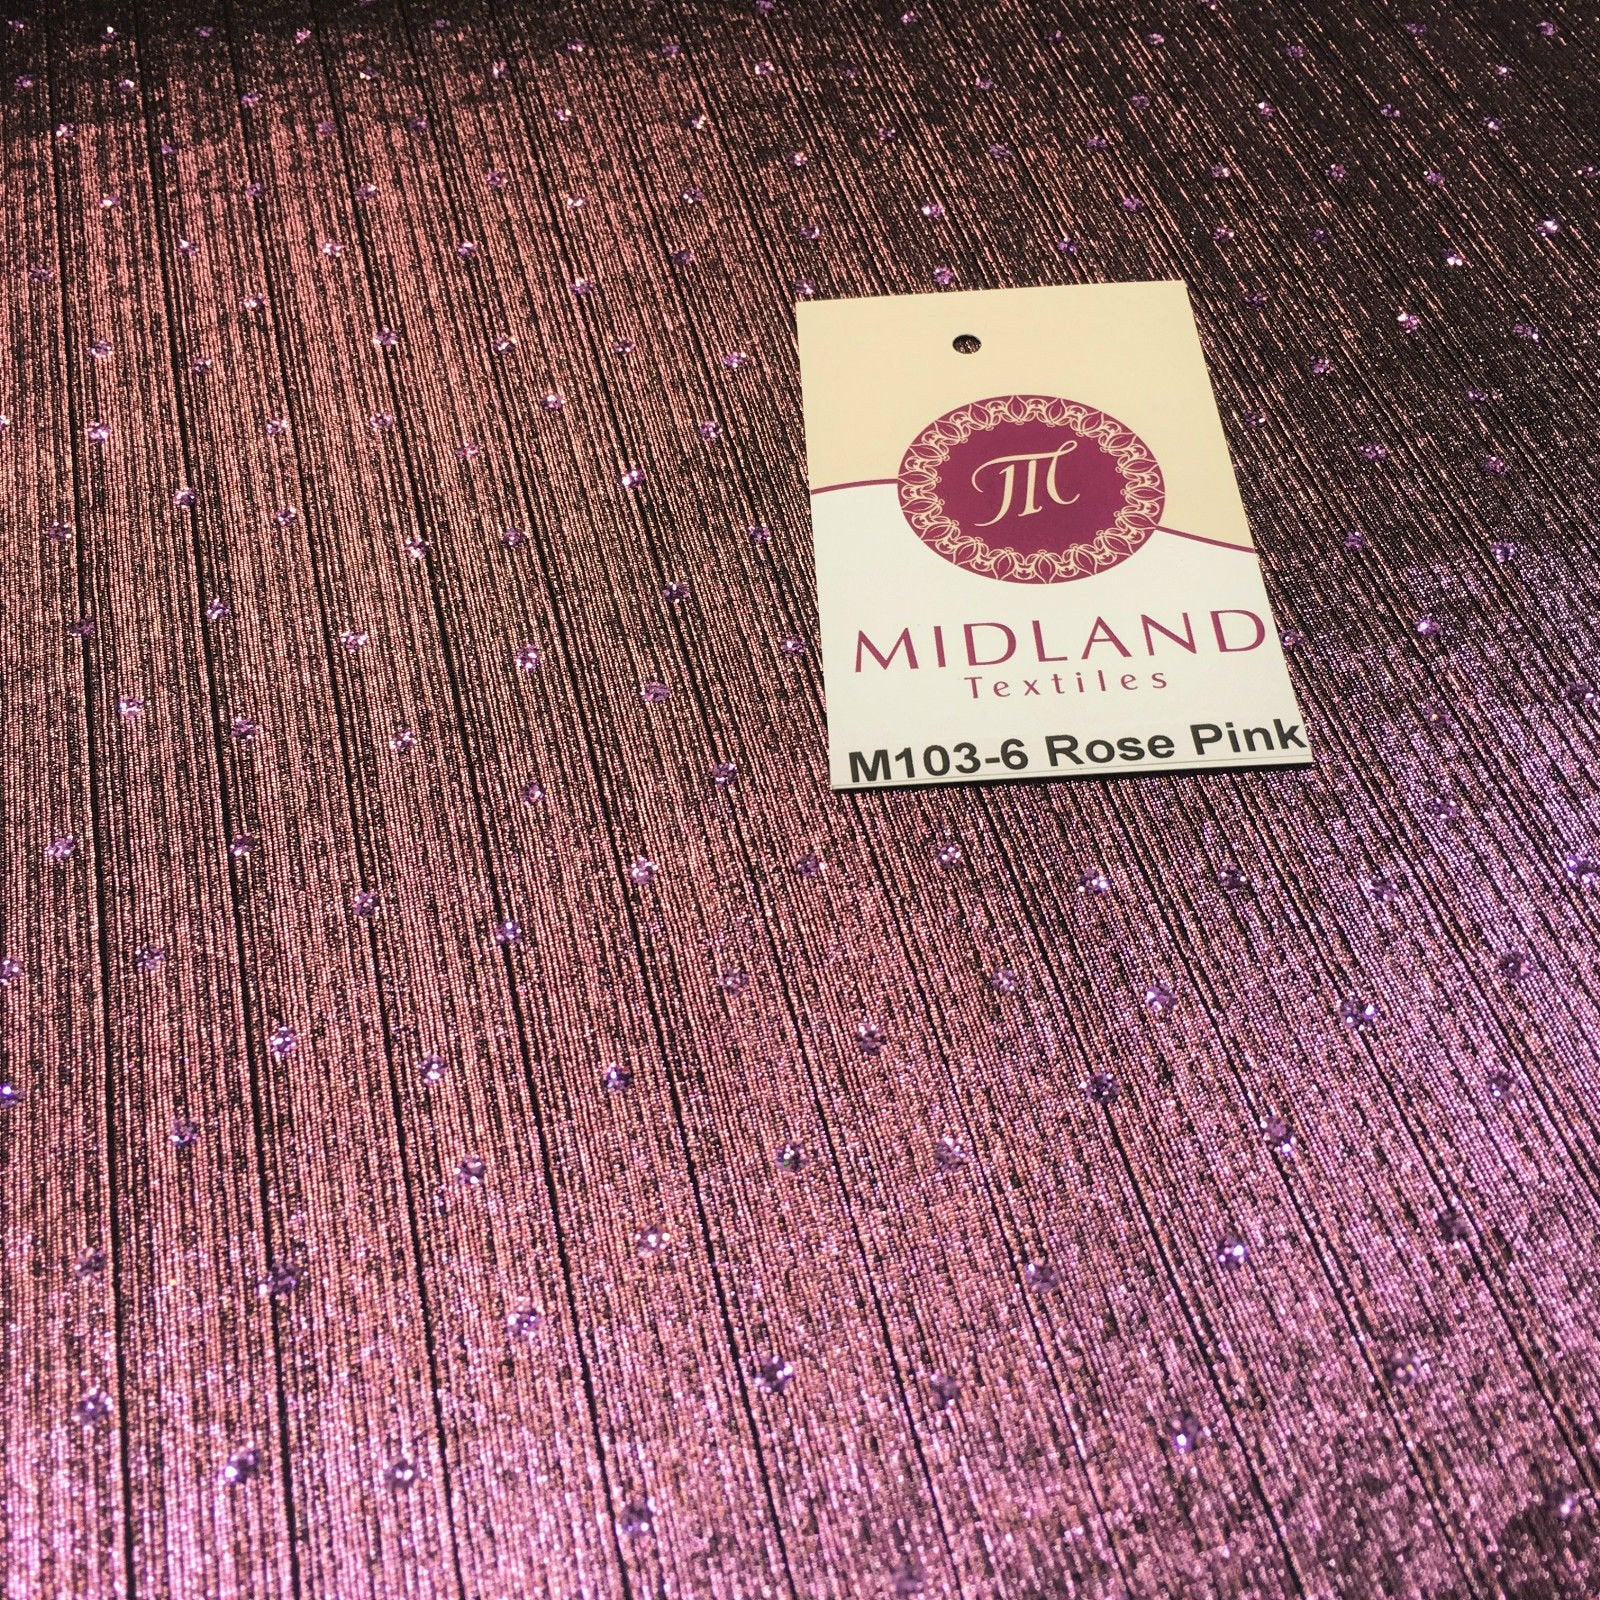 "Metallic Corduroy Lame Hologram Sequin 1 way stretch Fabric 58"" wide M103 Mtex"